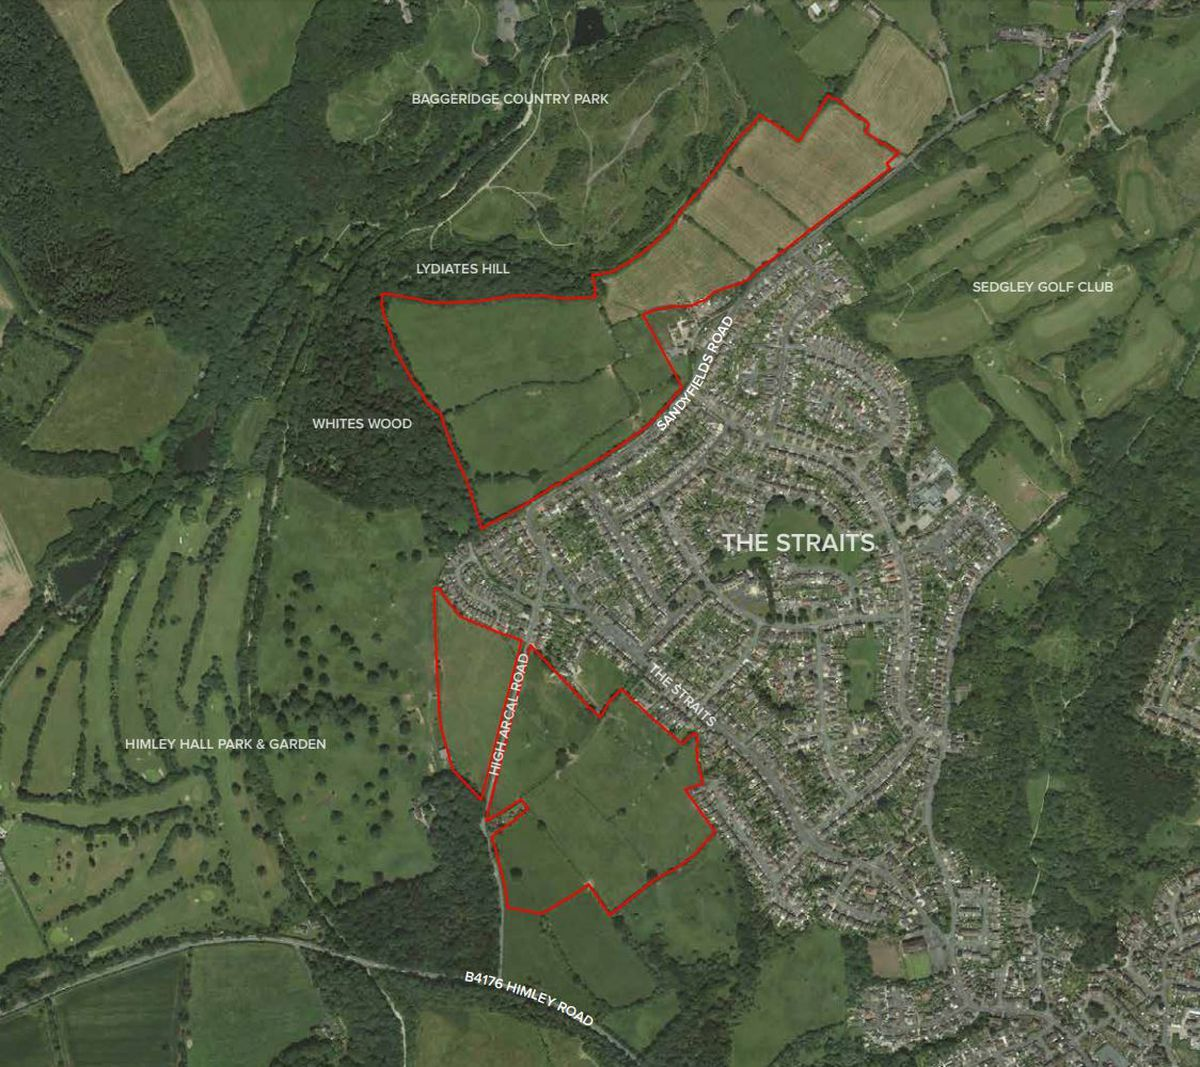 A map showing the sites of some of South Staffordshire Council's potential developments